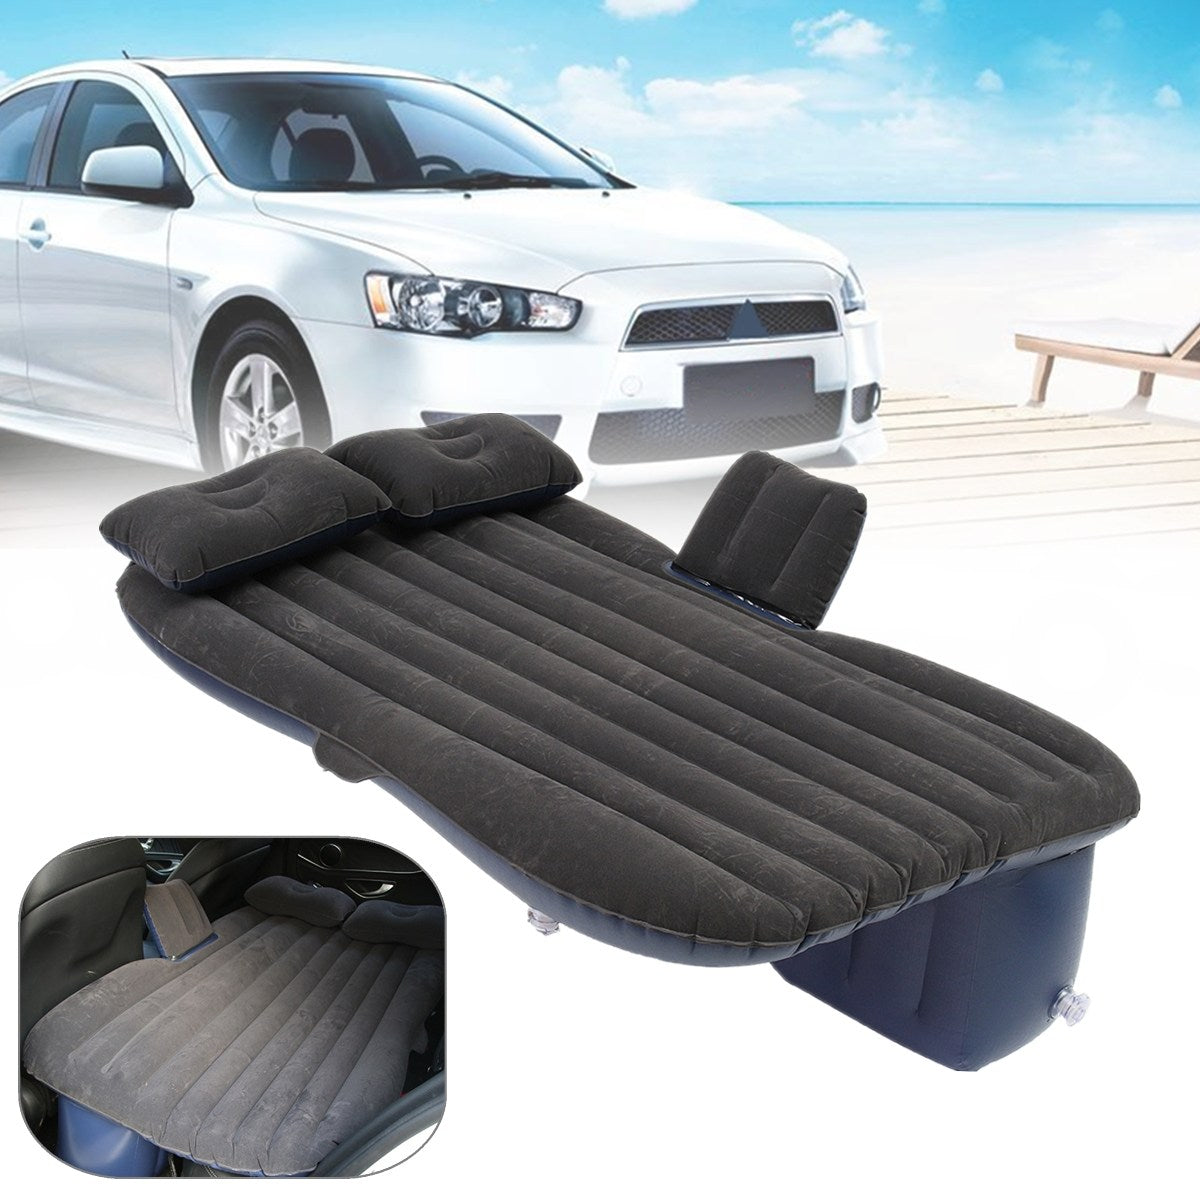 Car Back Seat Inflatable Bed - 60% OFF!